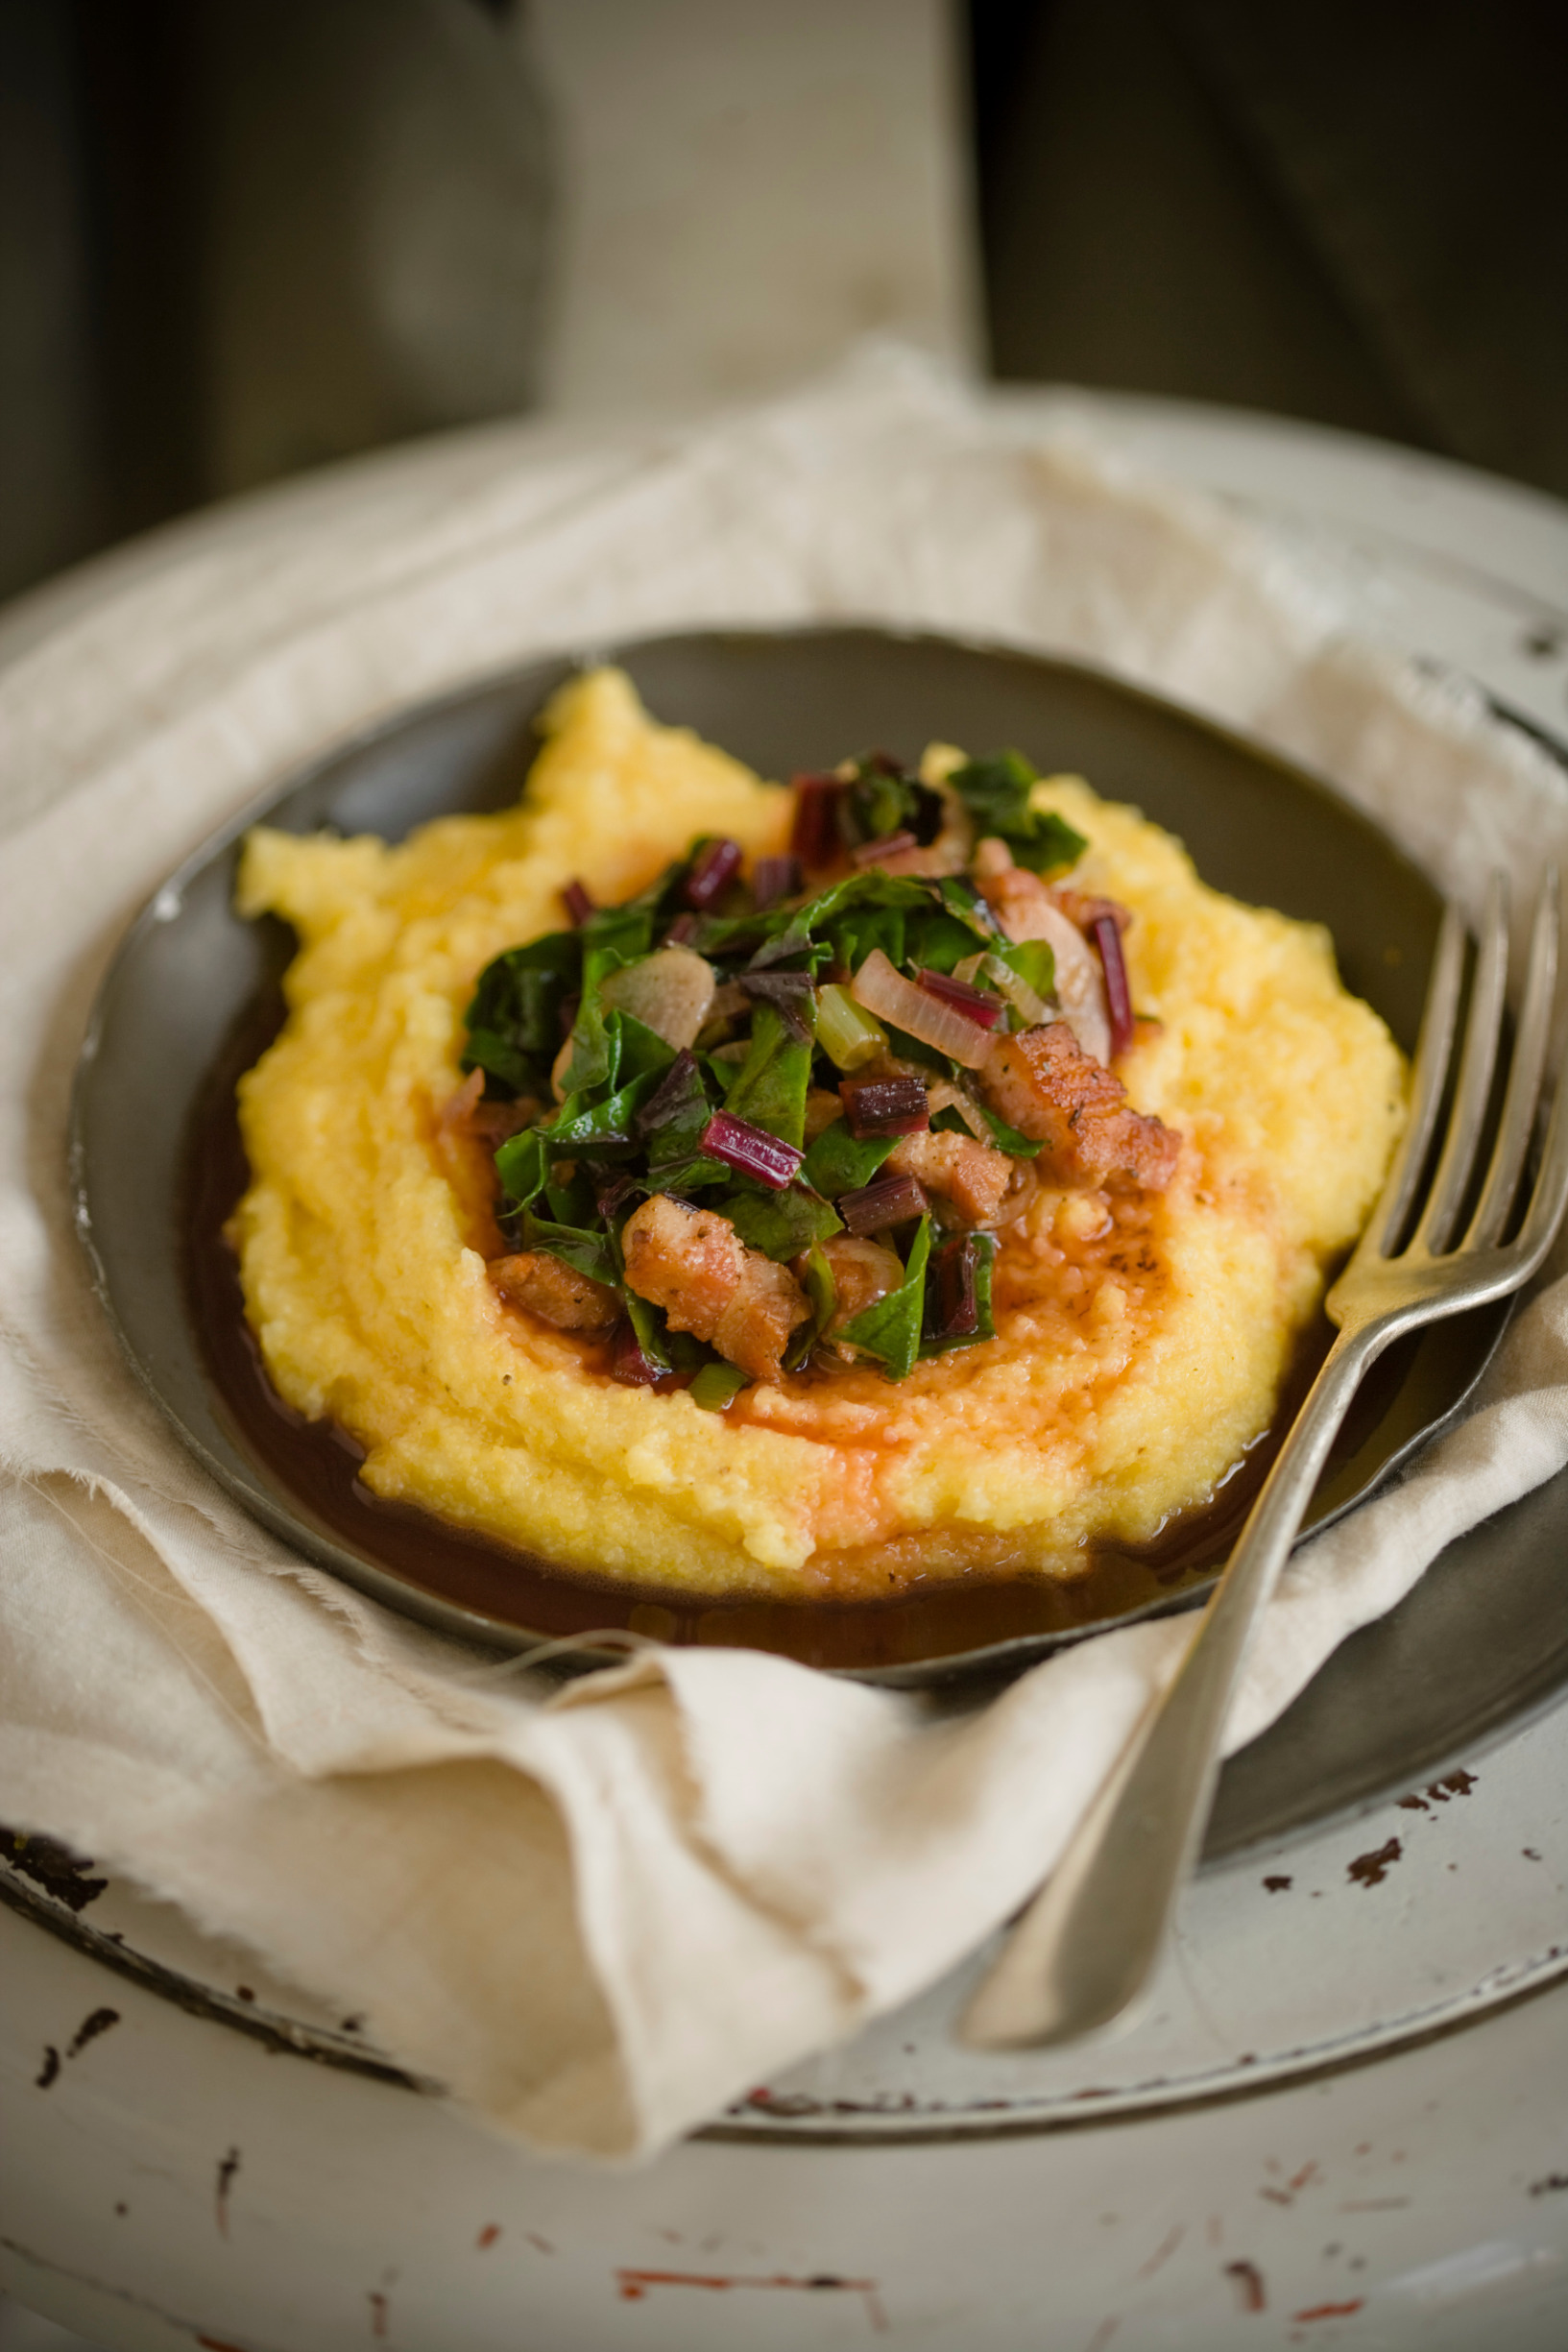 StockFood_12467277_HiRes_Polenta_with_beetroot_leaves_and_bacon